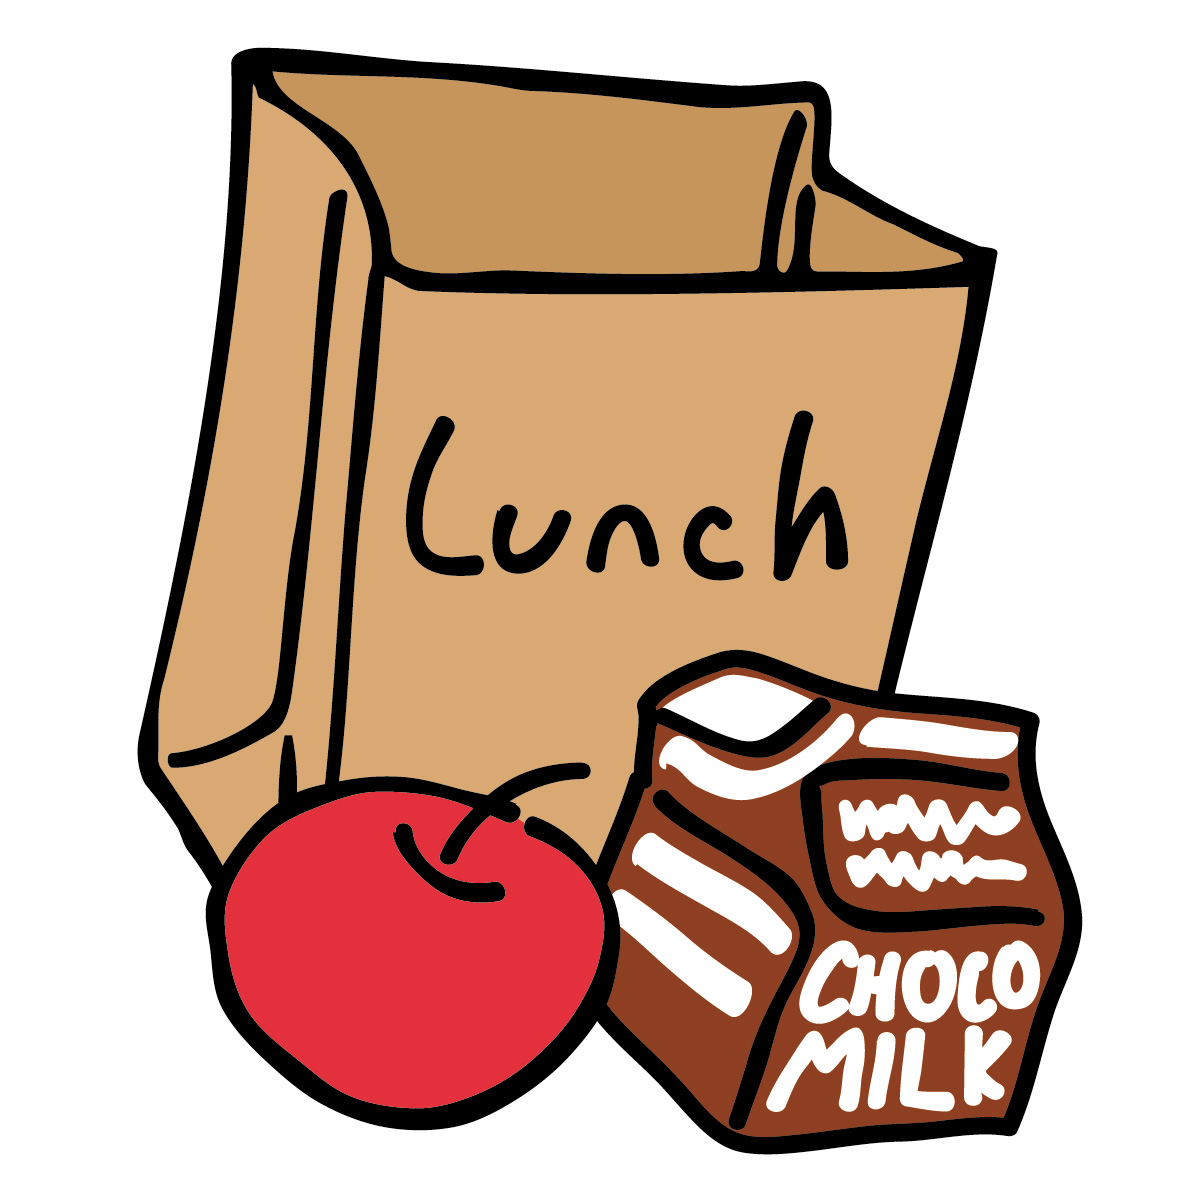 Clipart lunch. Time clip art panda